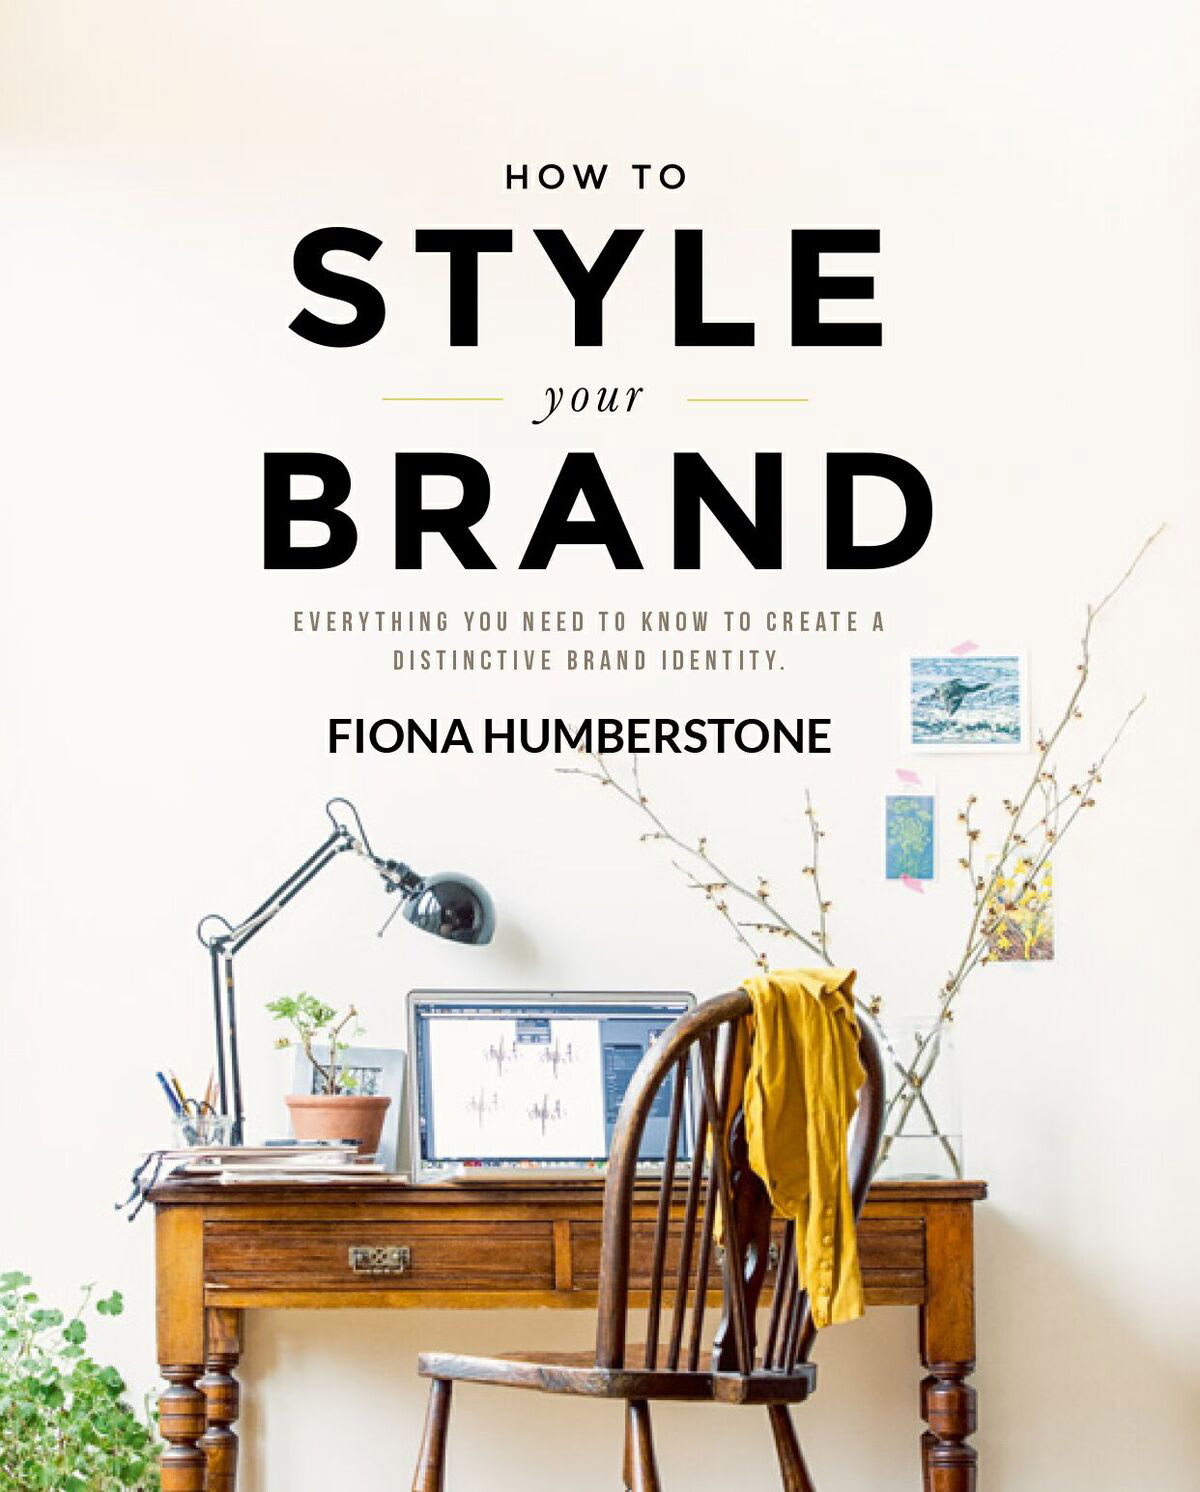 Branch | How To Style Your Brand by Fiona Humberstone